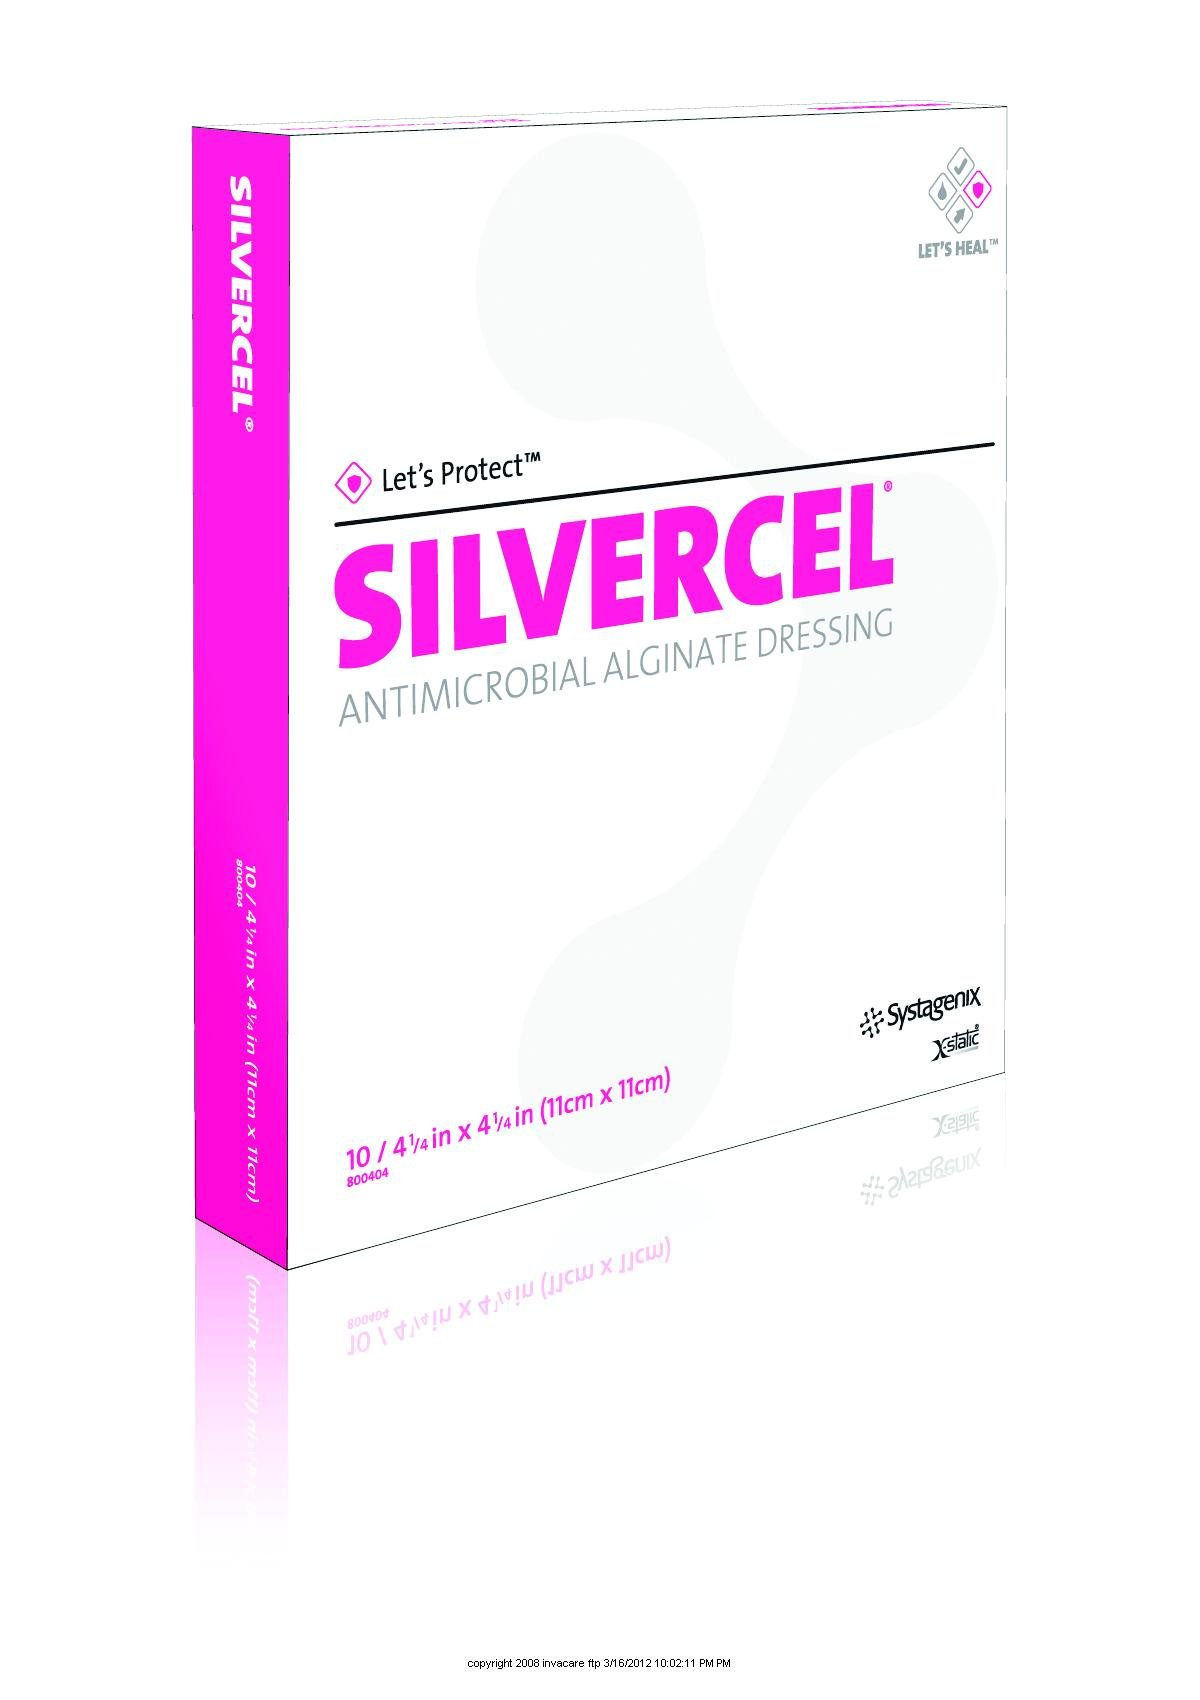 SILVERCEL Antimicrobial Alginate Dressing [SILVERCEL dressingNG 4X4]